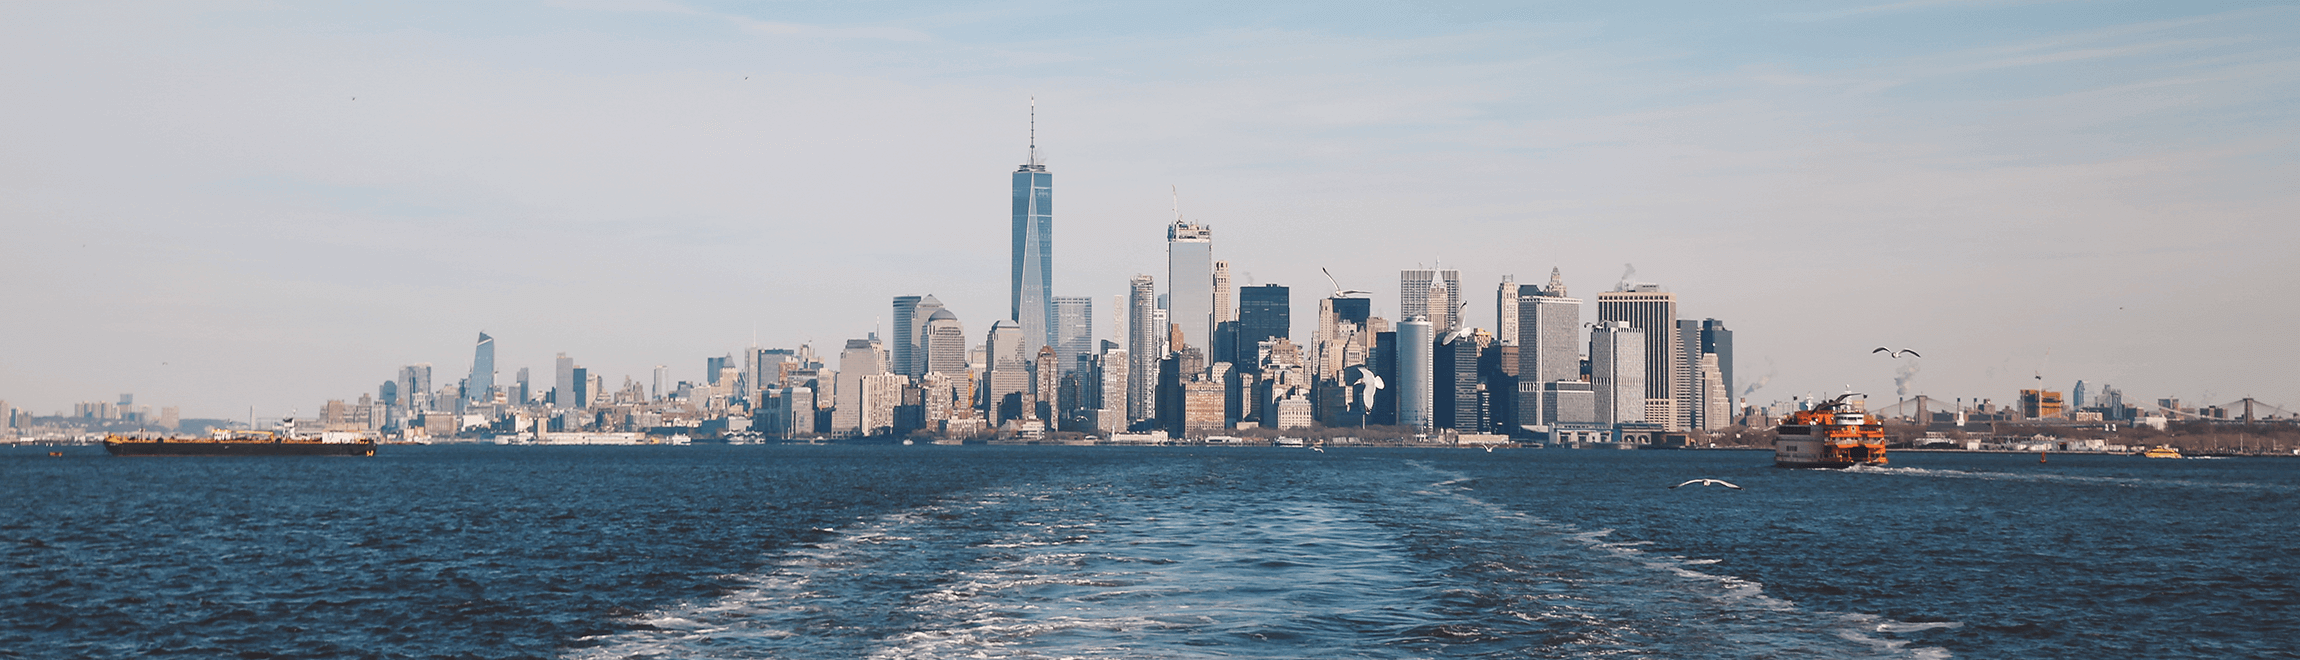 New York's Sea Level Rise - Sea Level Rise